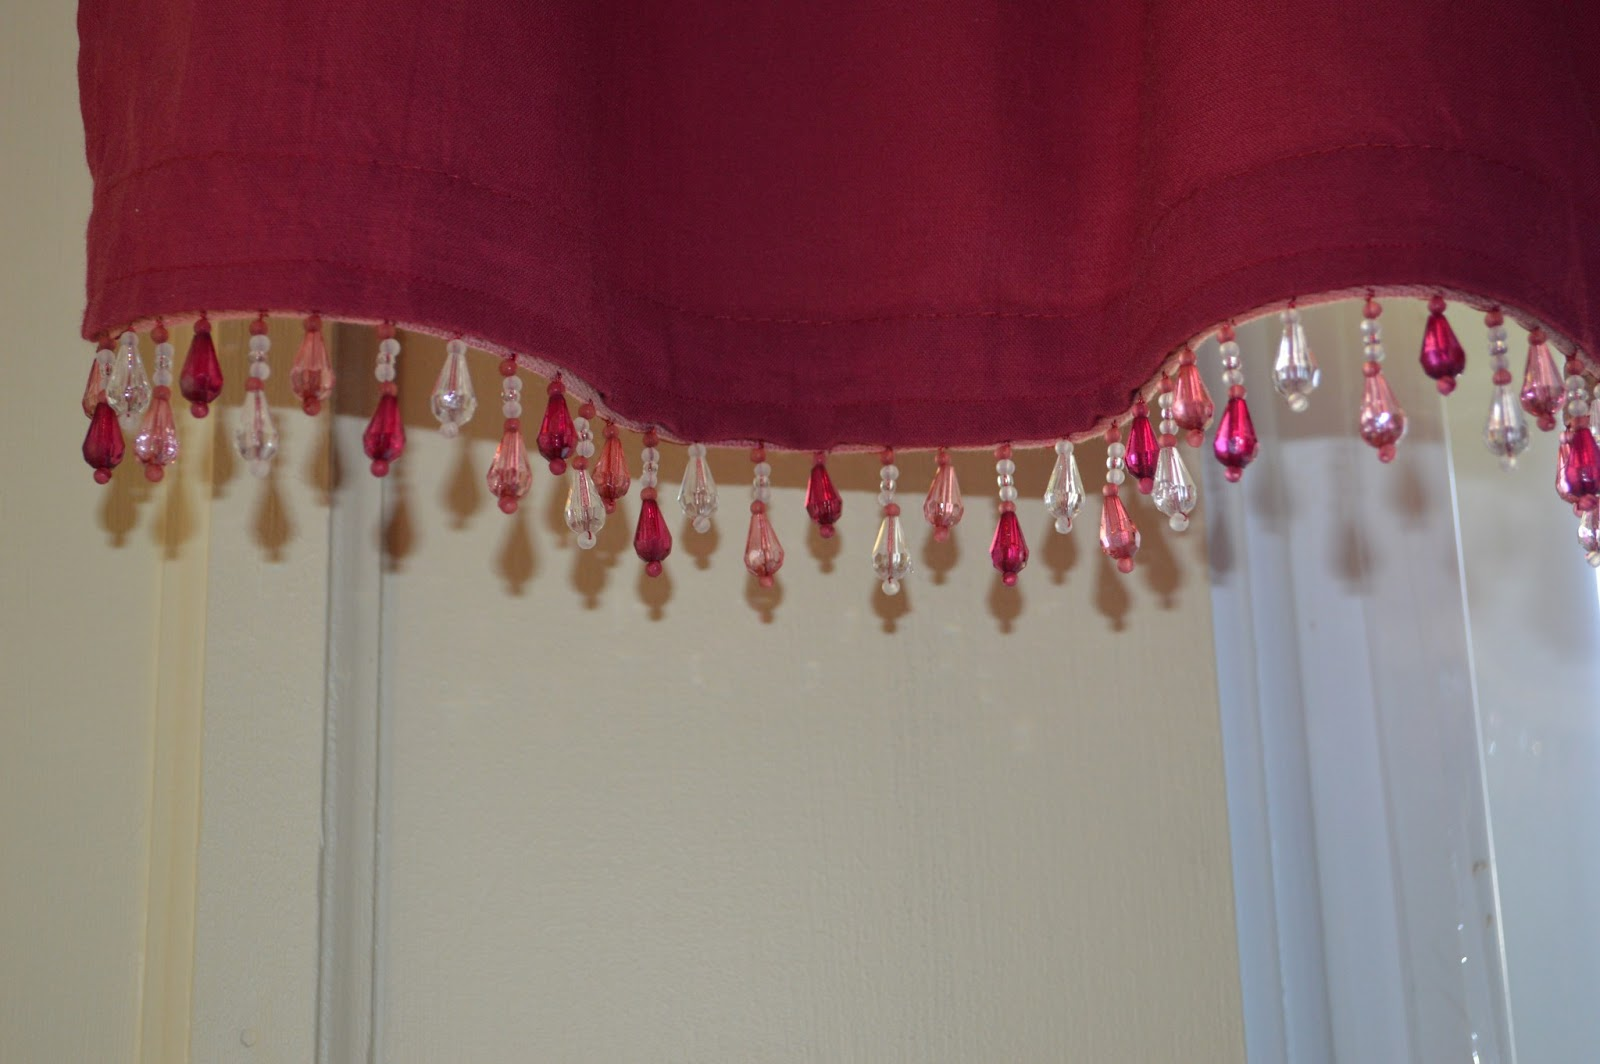 Adding beads to curtains